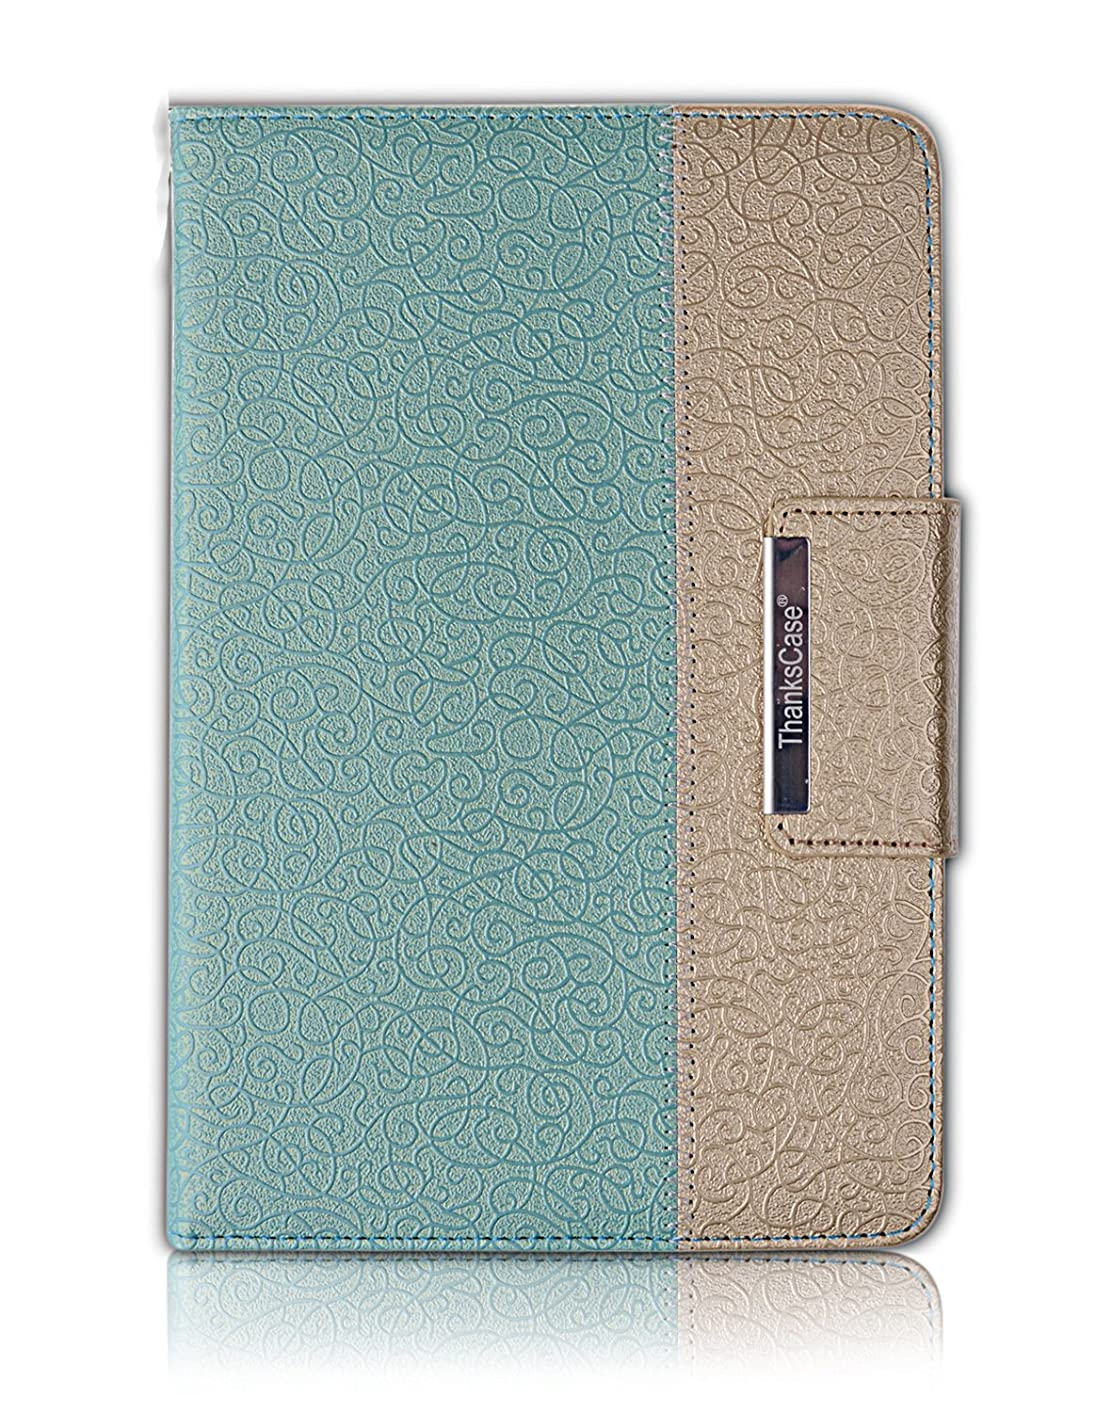 Samsung Galaxy Tab A 8.0 Case, Thankscase Rotating Case Cover for Tab A 8.0 2015 Release SM-P350/SM-T350 with Wallet and Pocket with Hand Strap with Smart Cover Function for Tab A 8.0 (Gold Jade)